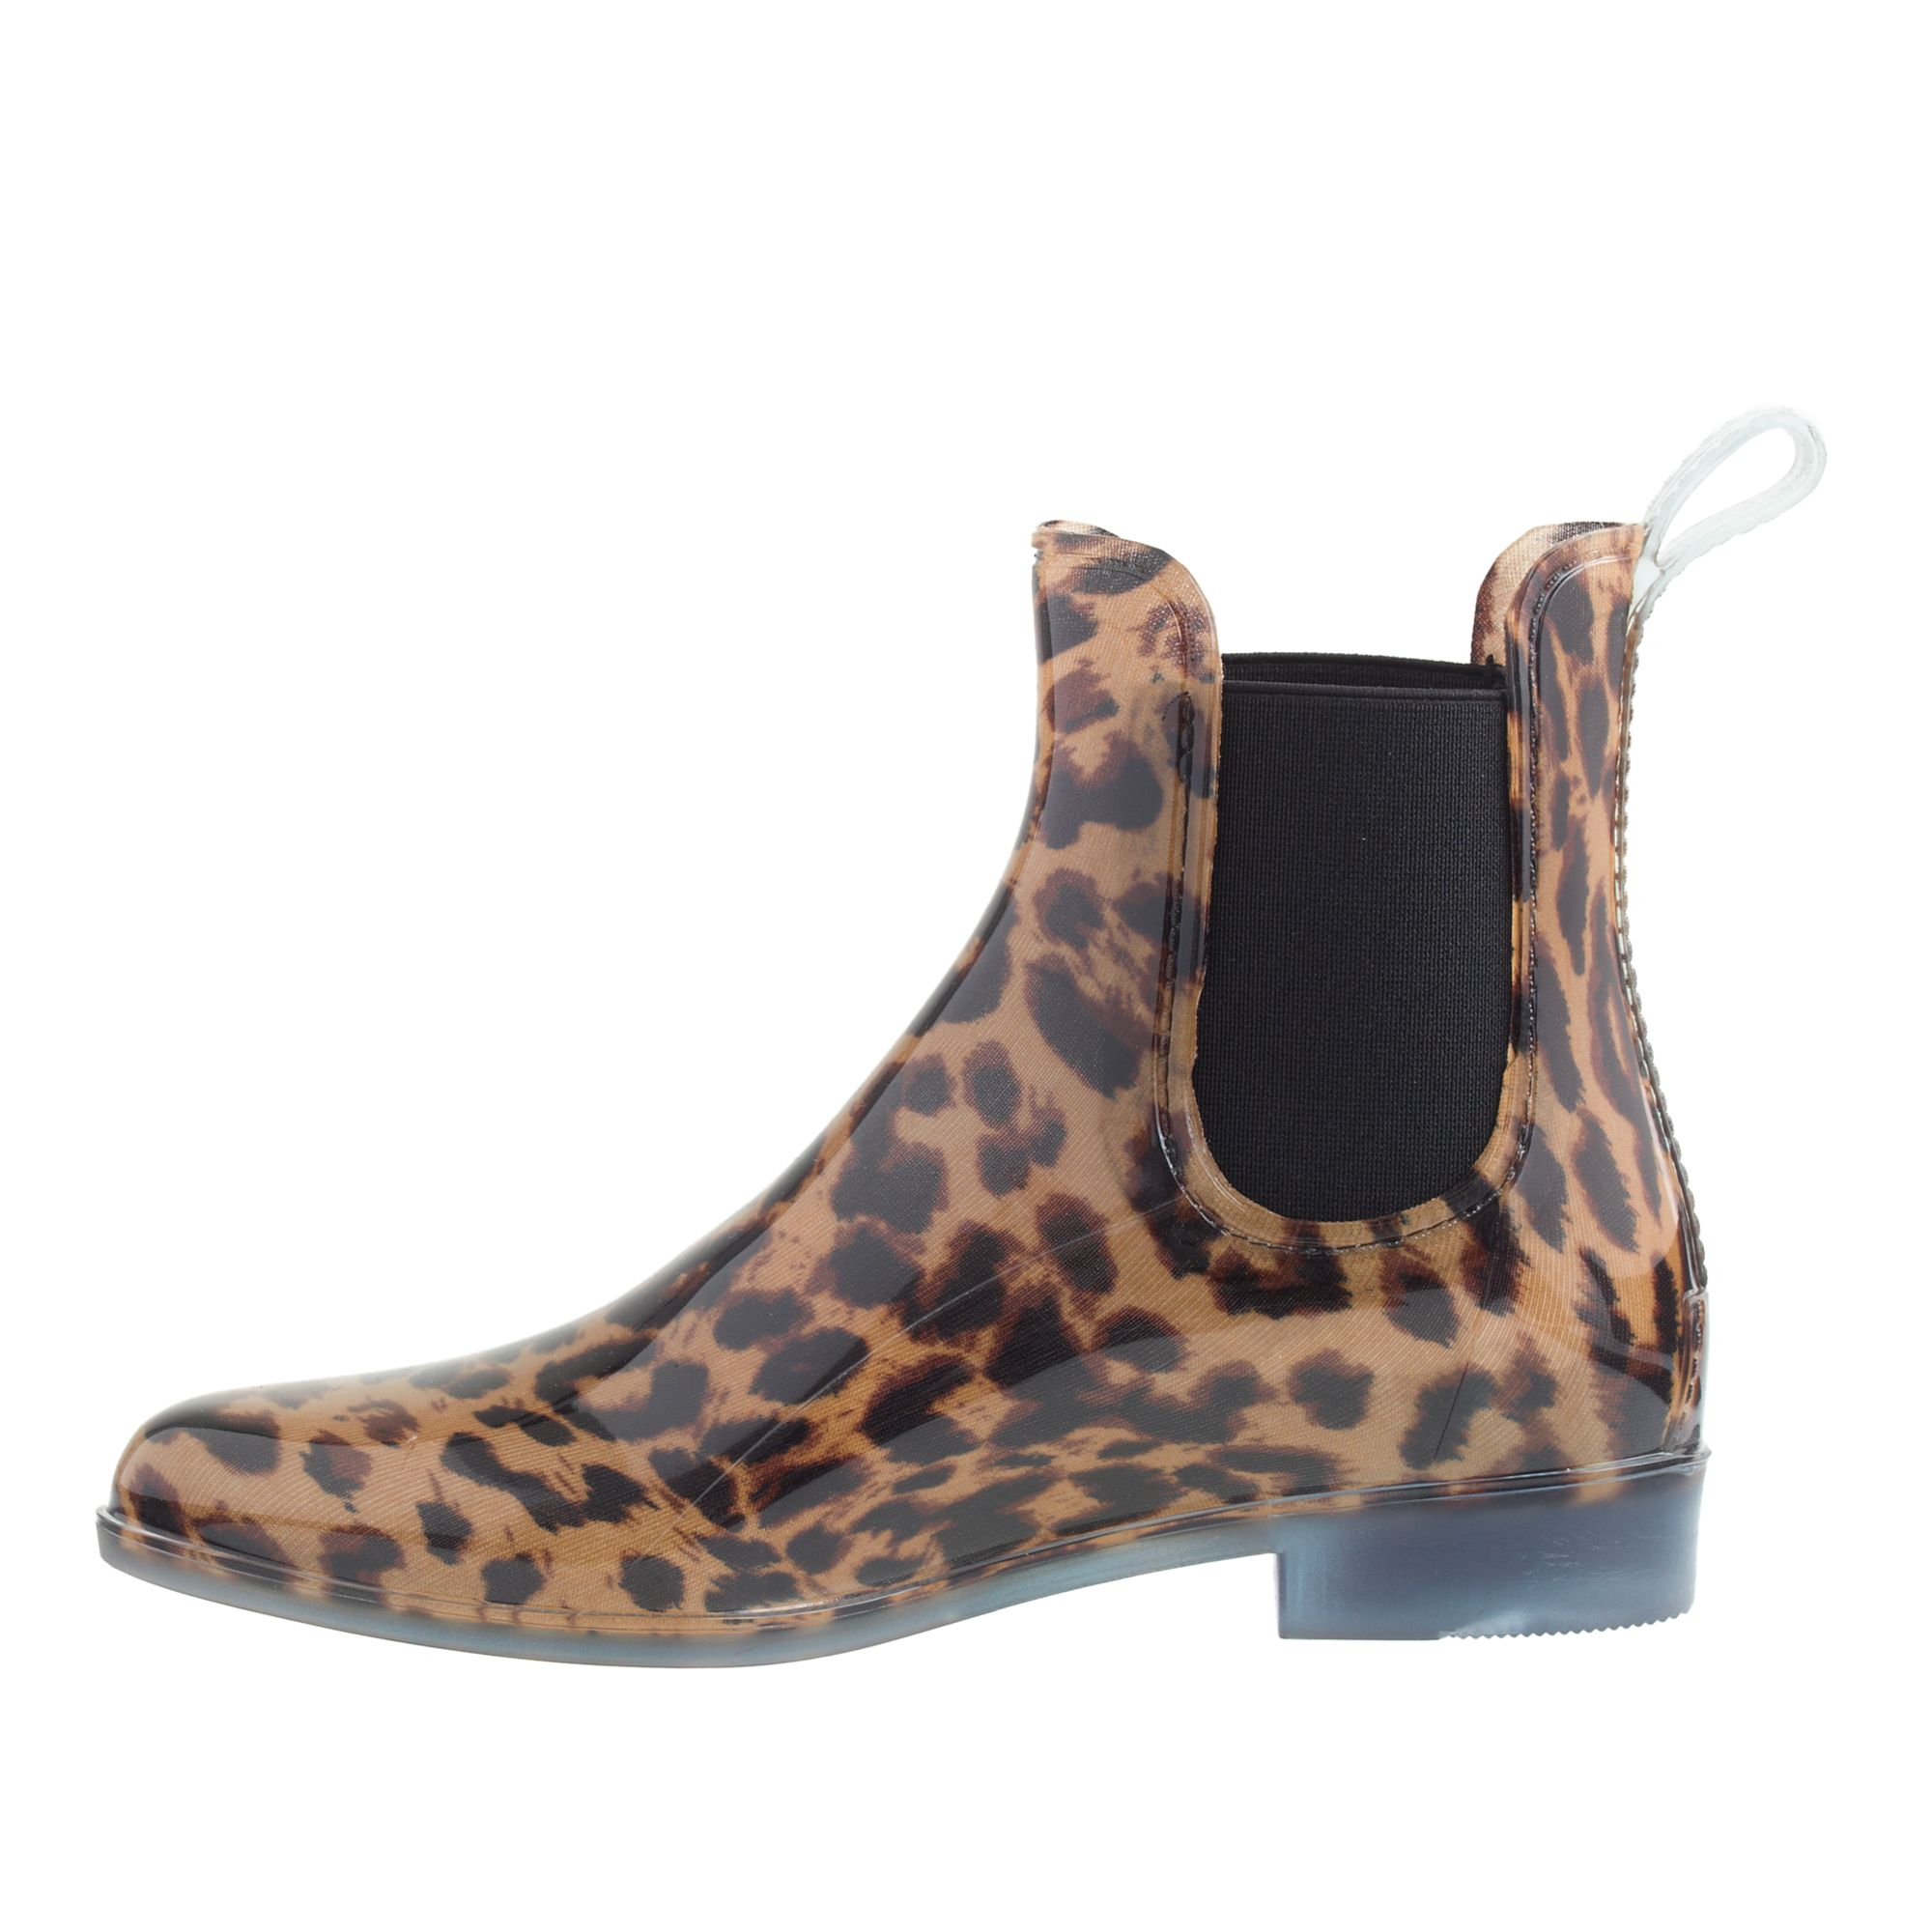 j crew chelsea leopard boots in animal classic